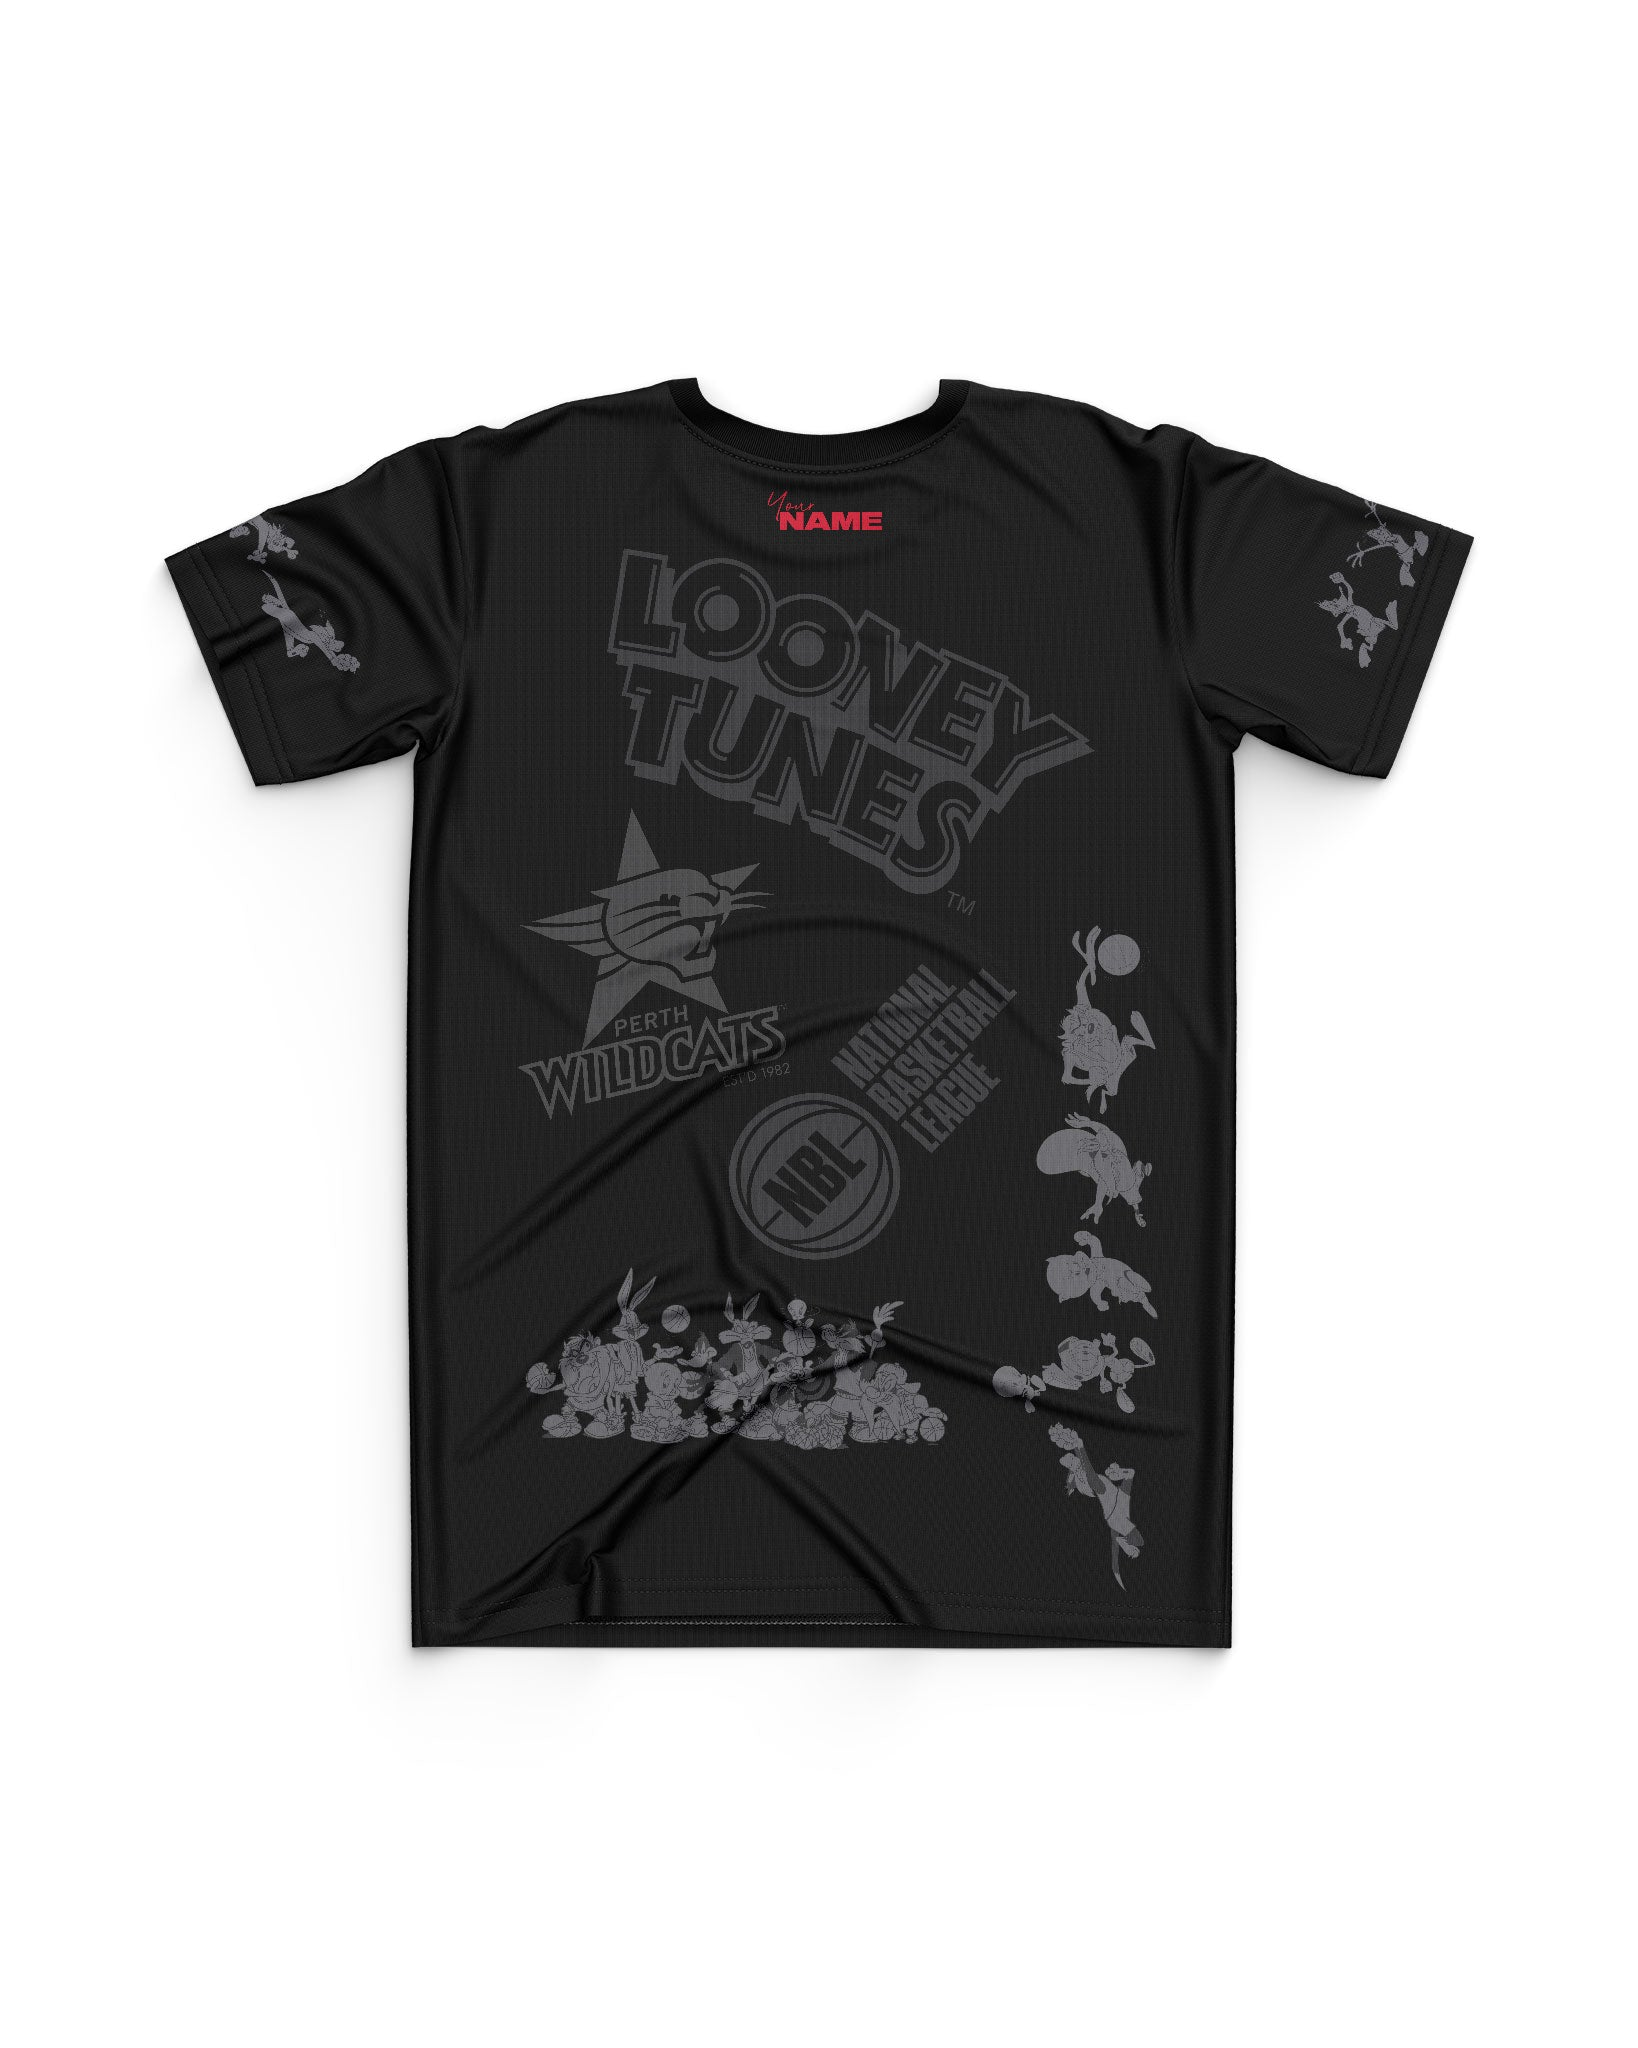 Perth Wildcats 20/21 Looney Tunes Youth Mono Tee - Personalised